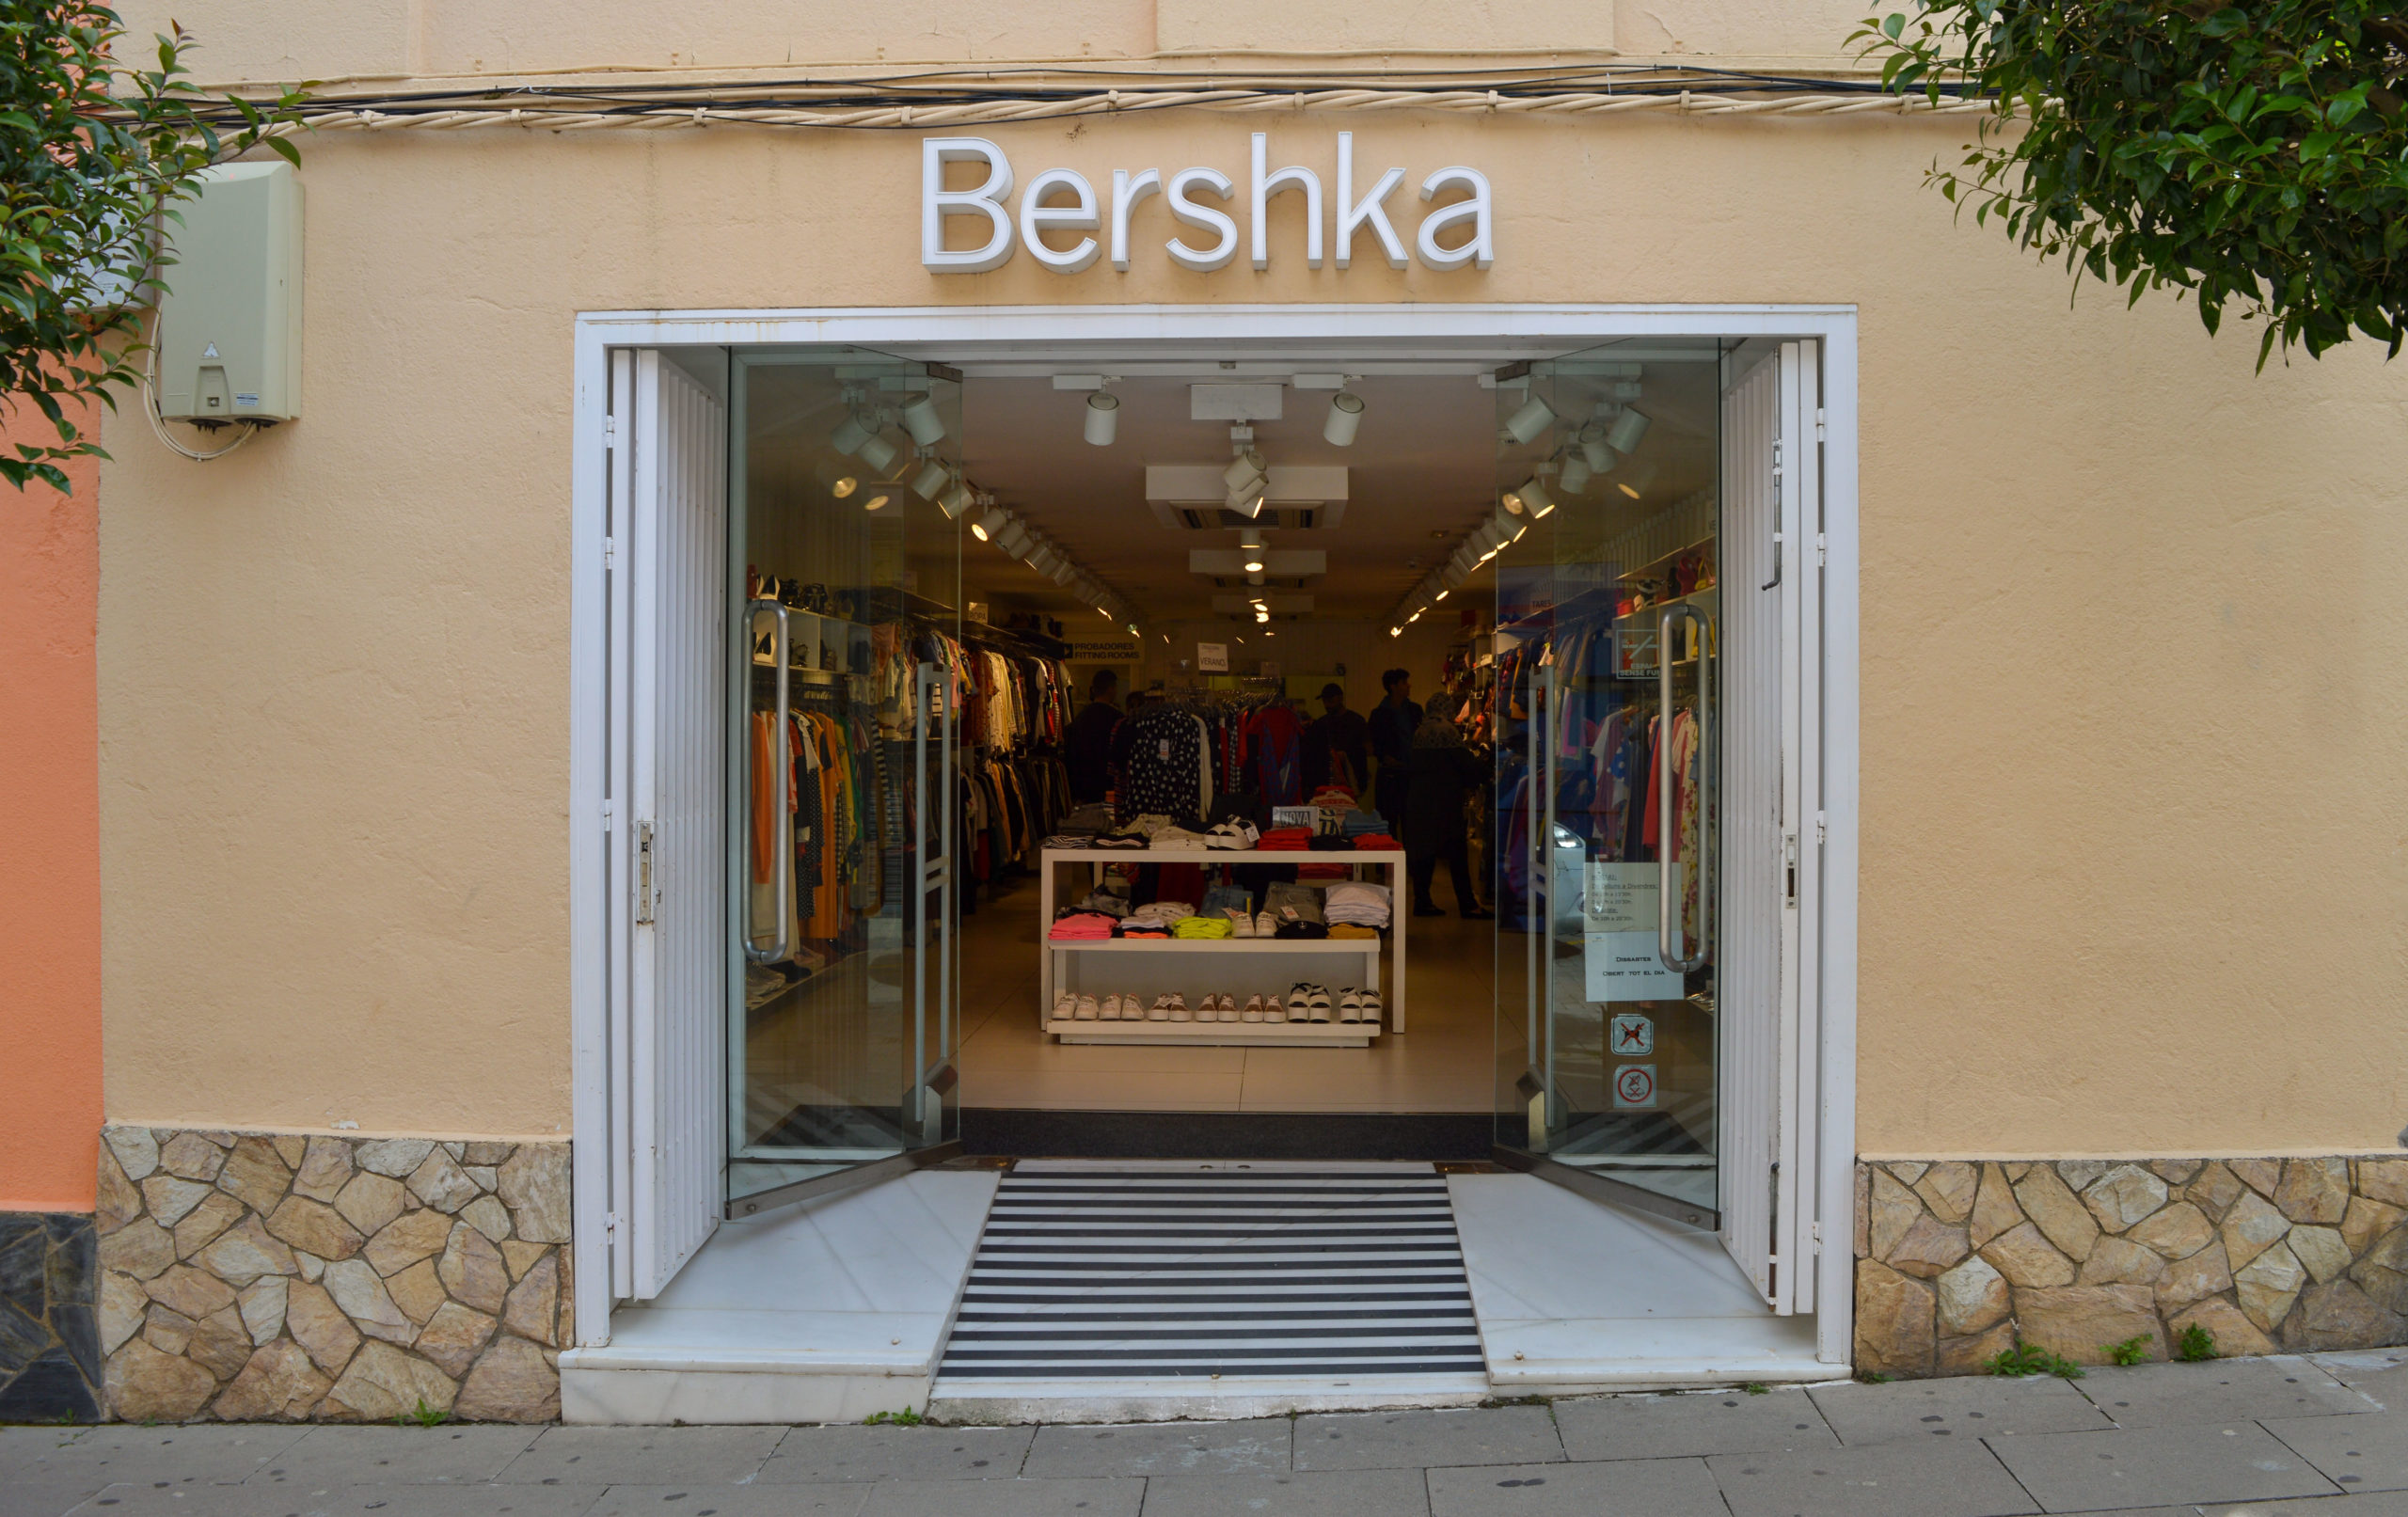 Bershka for&from